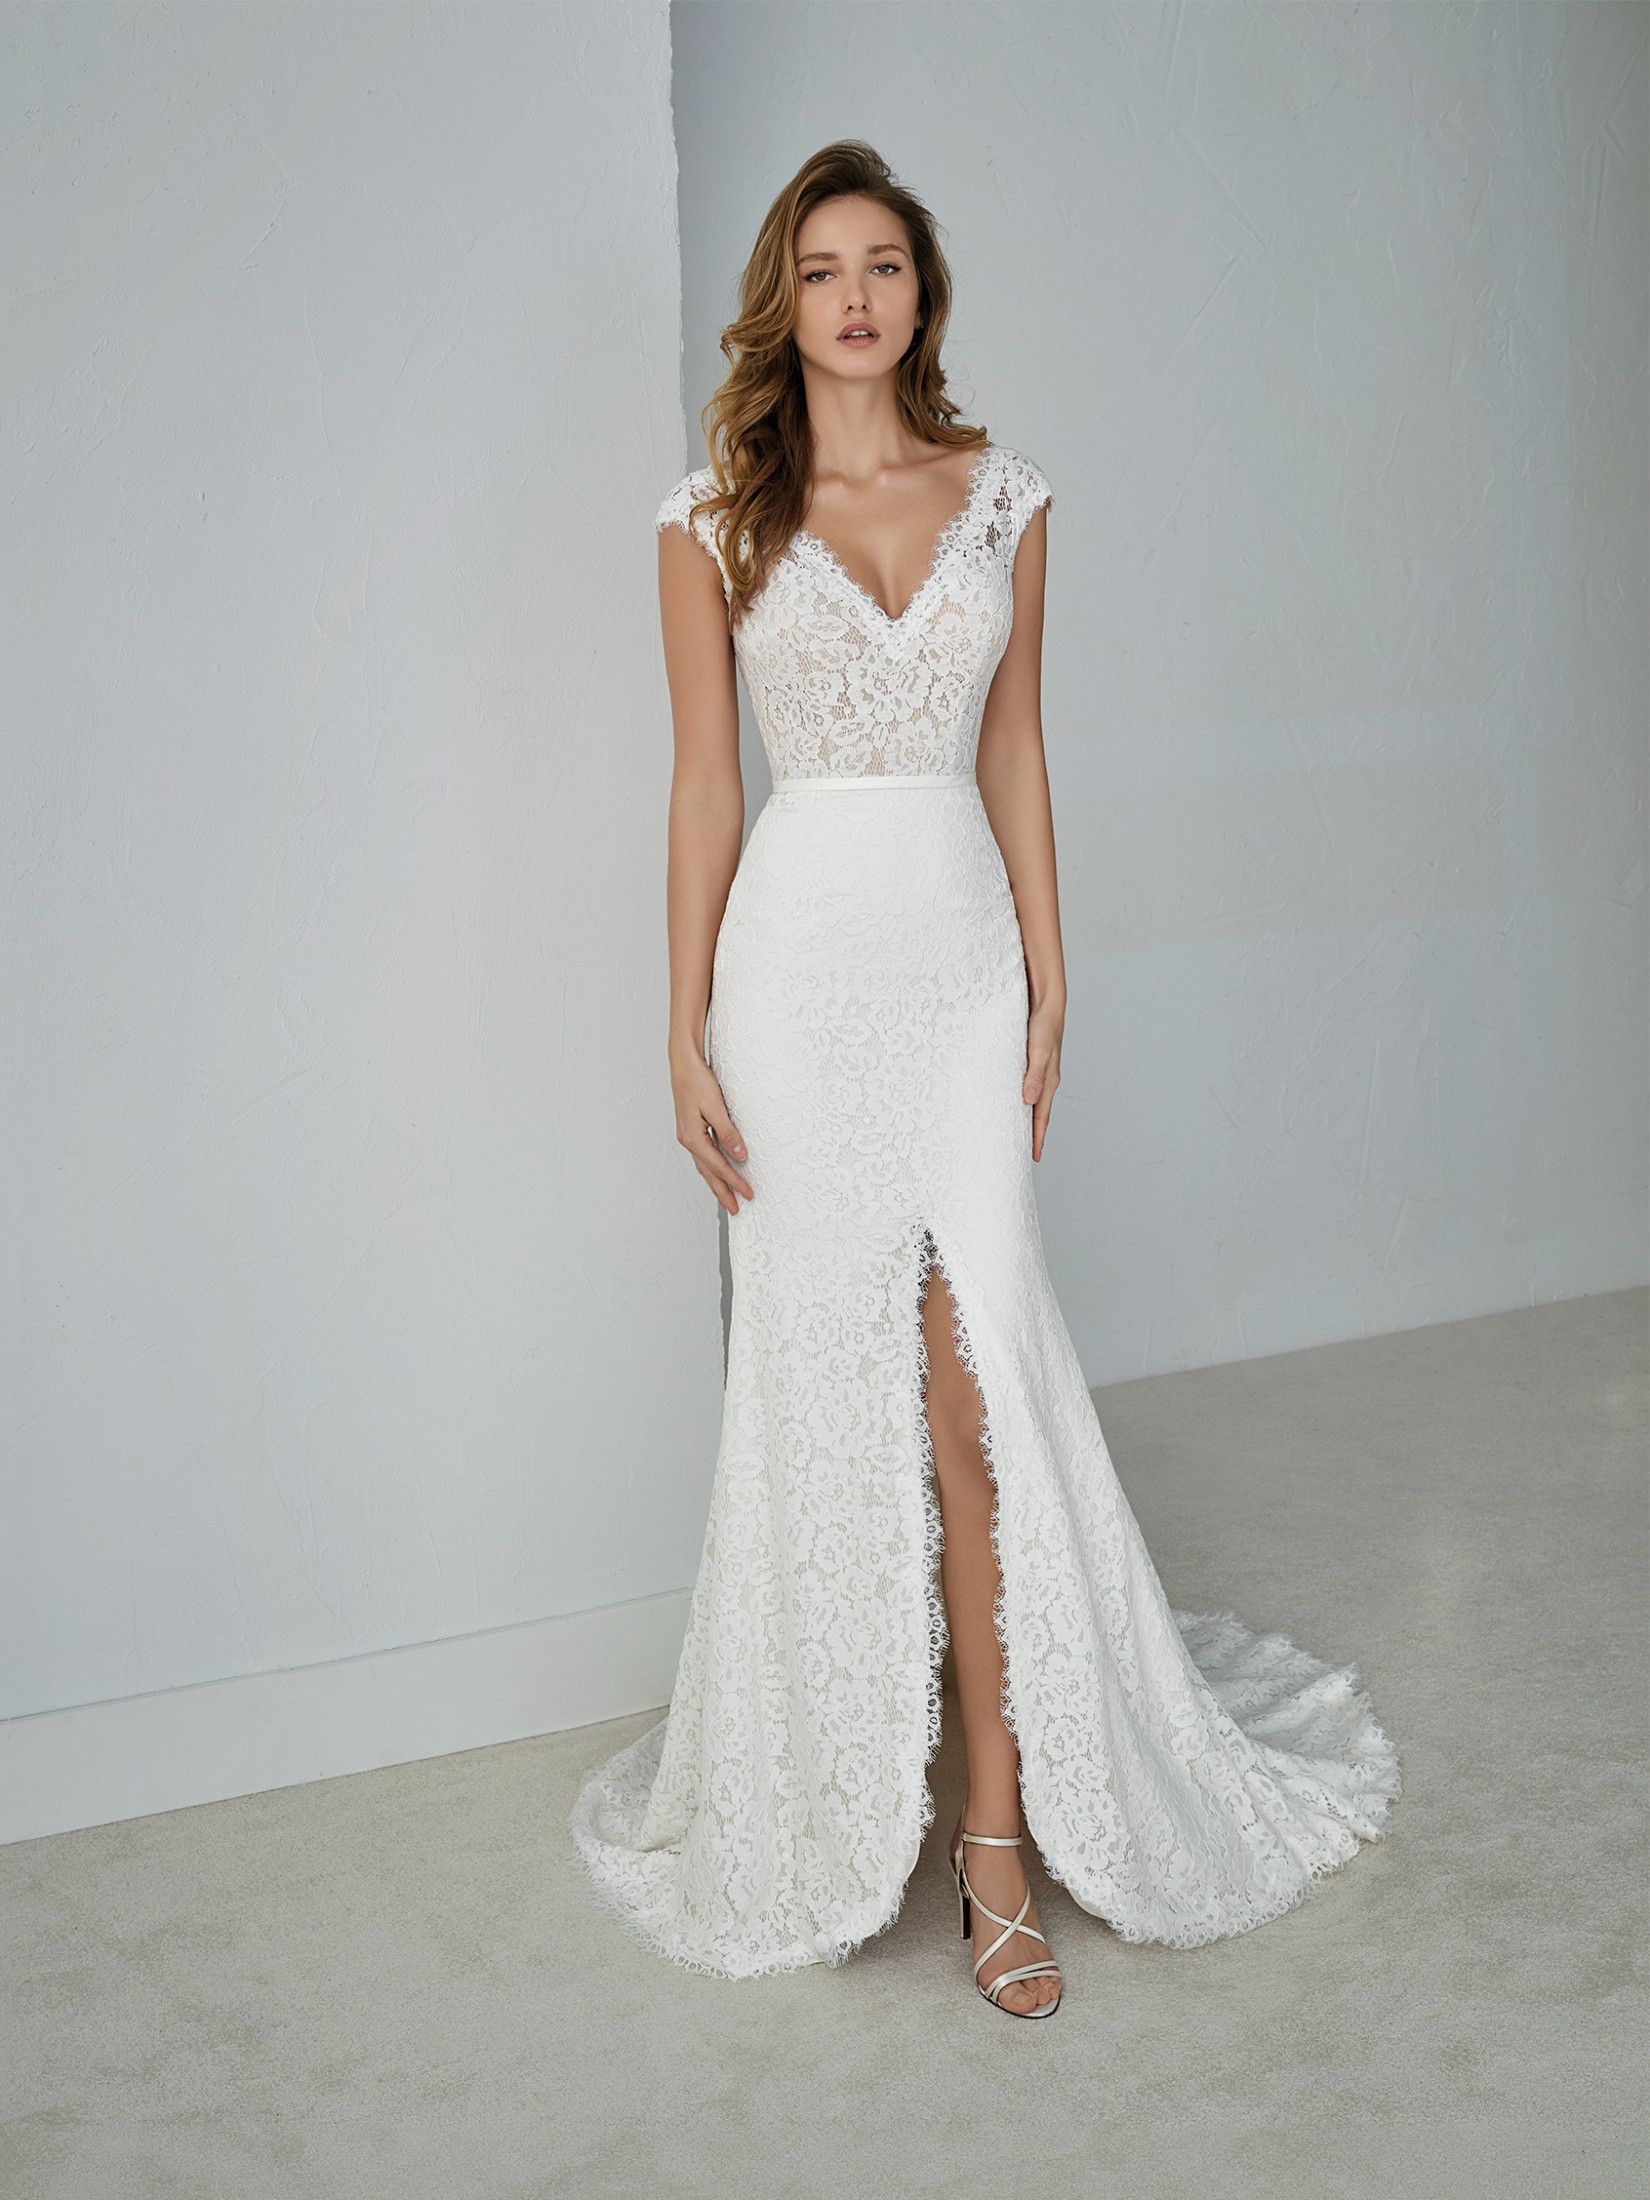 Wedding dress for your body  Wedding Dress For Your Body Type  wedding dresses  Pinterest